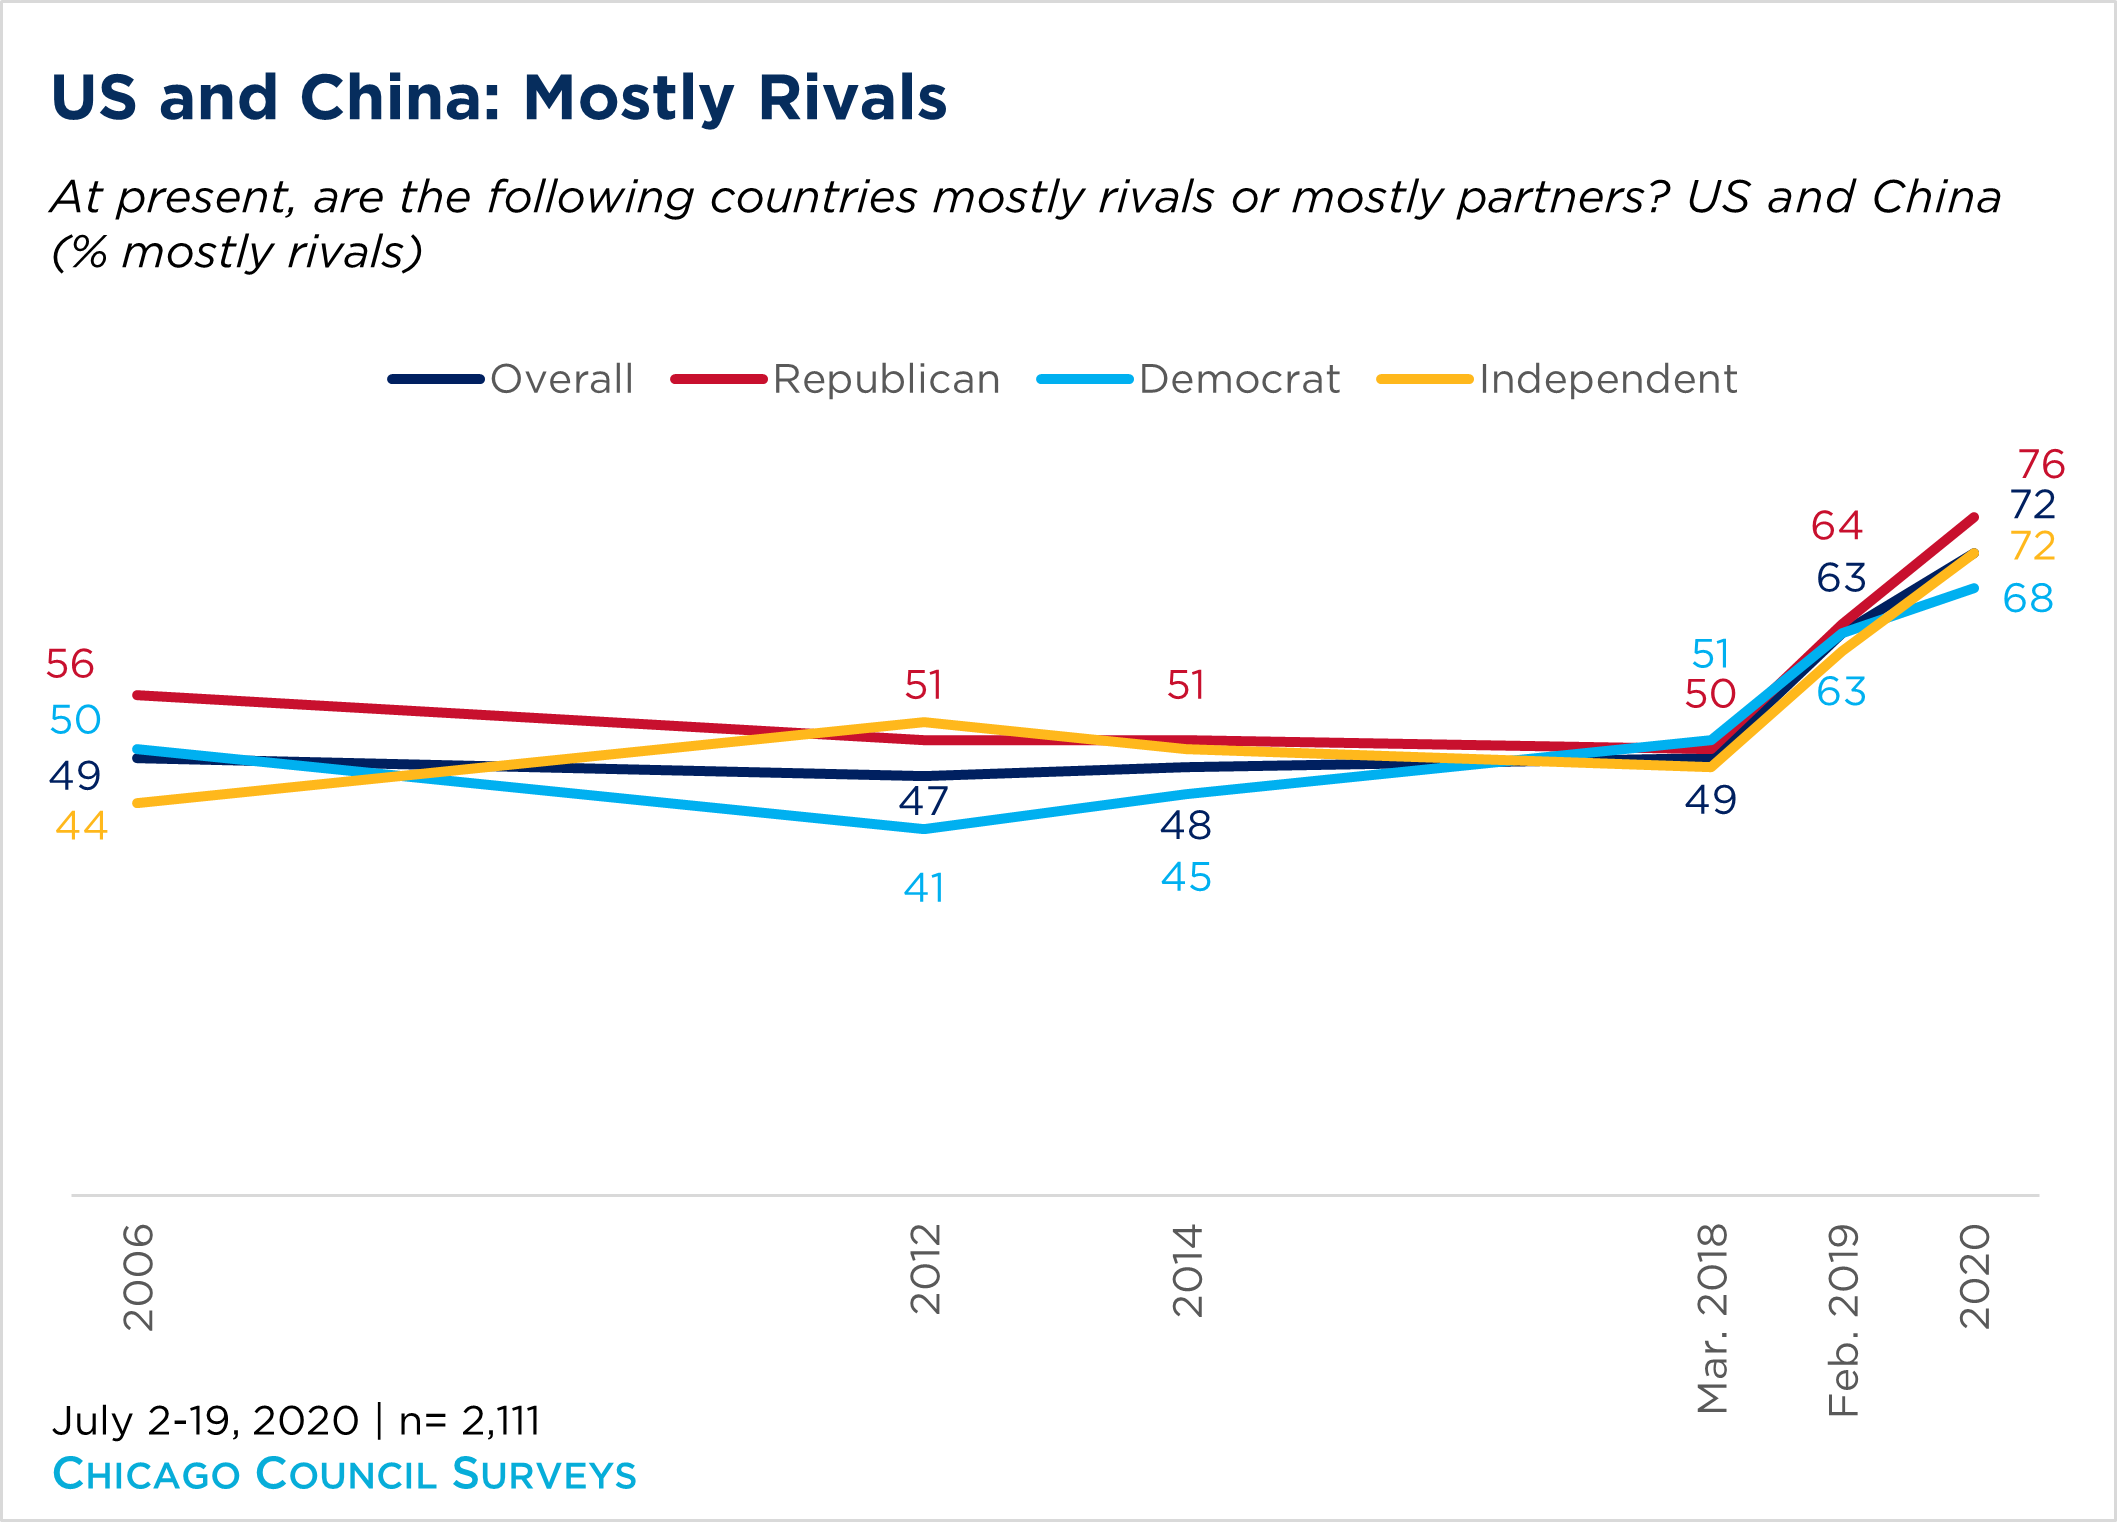 Chart showing how Americans feel about China as mostly a rival